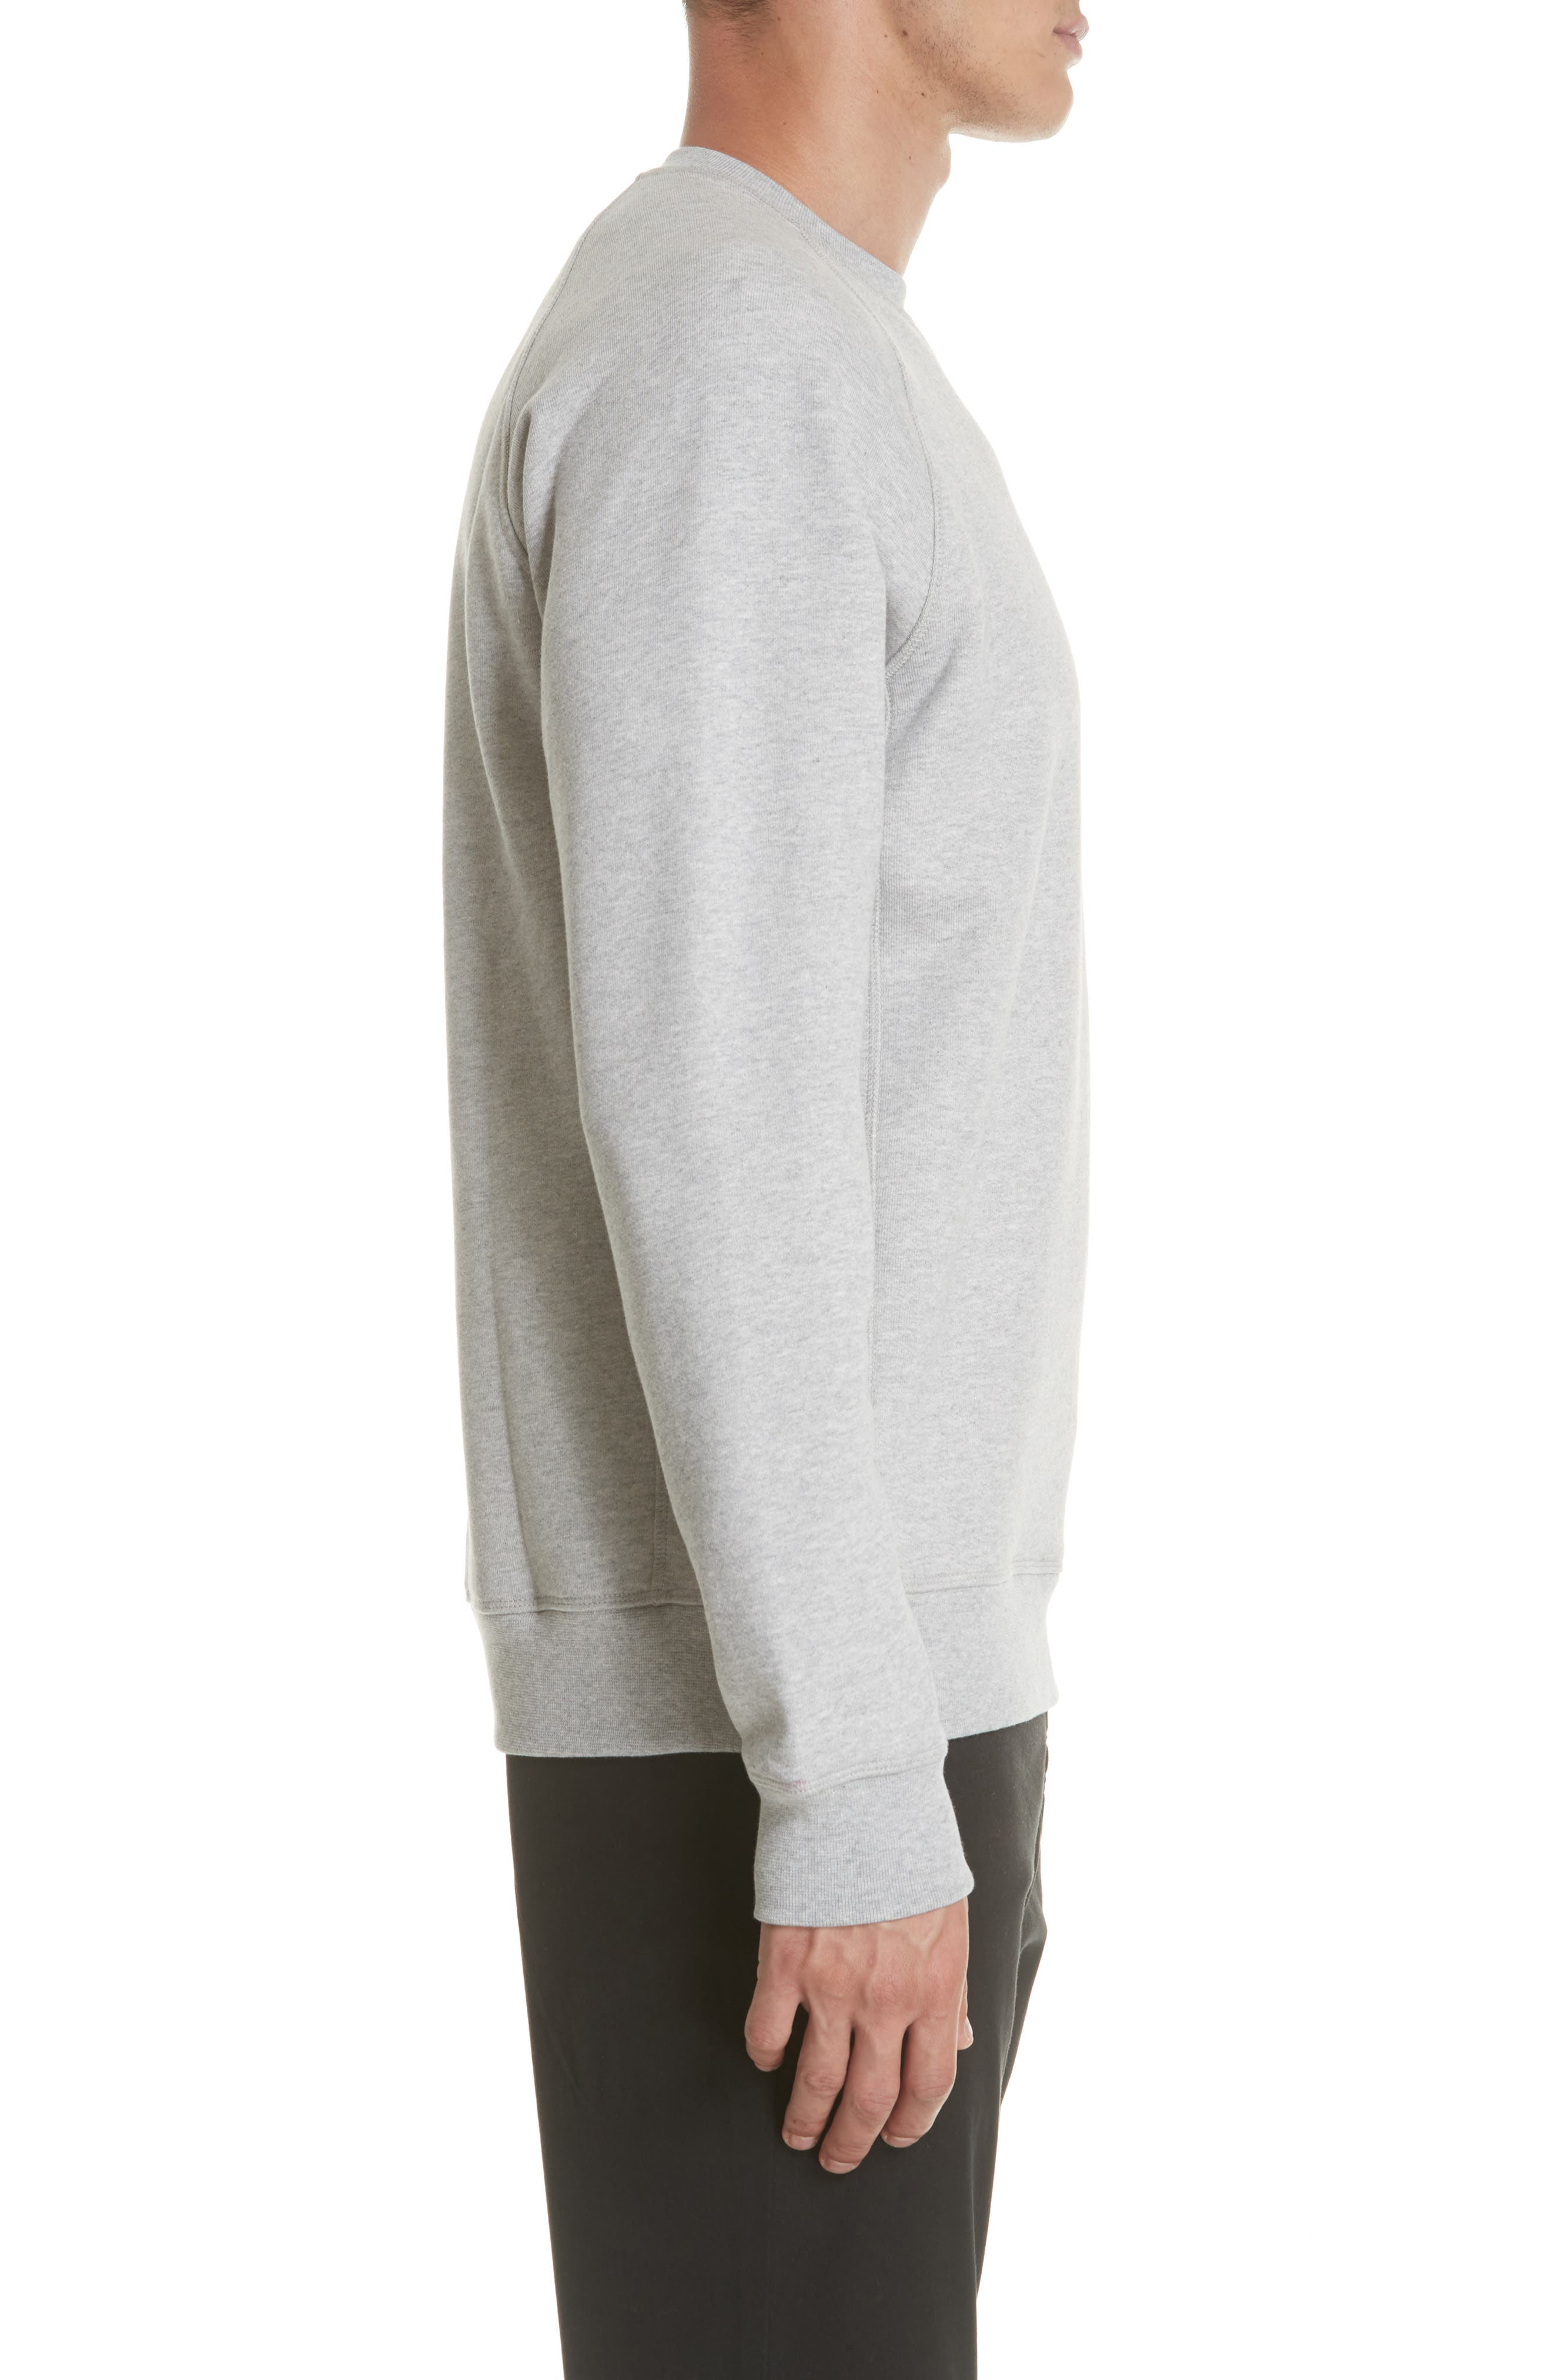 Ketel Crewneck Sweatshirt,                             Alternate thumbnail 3, color,                             050